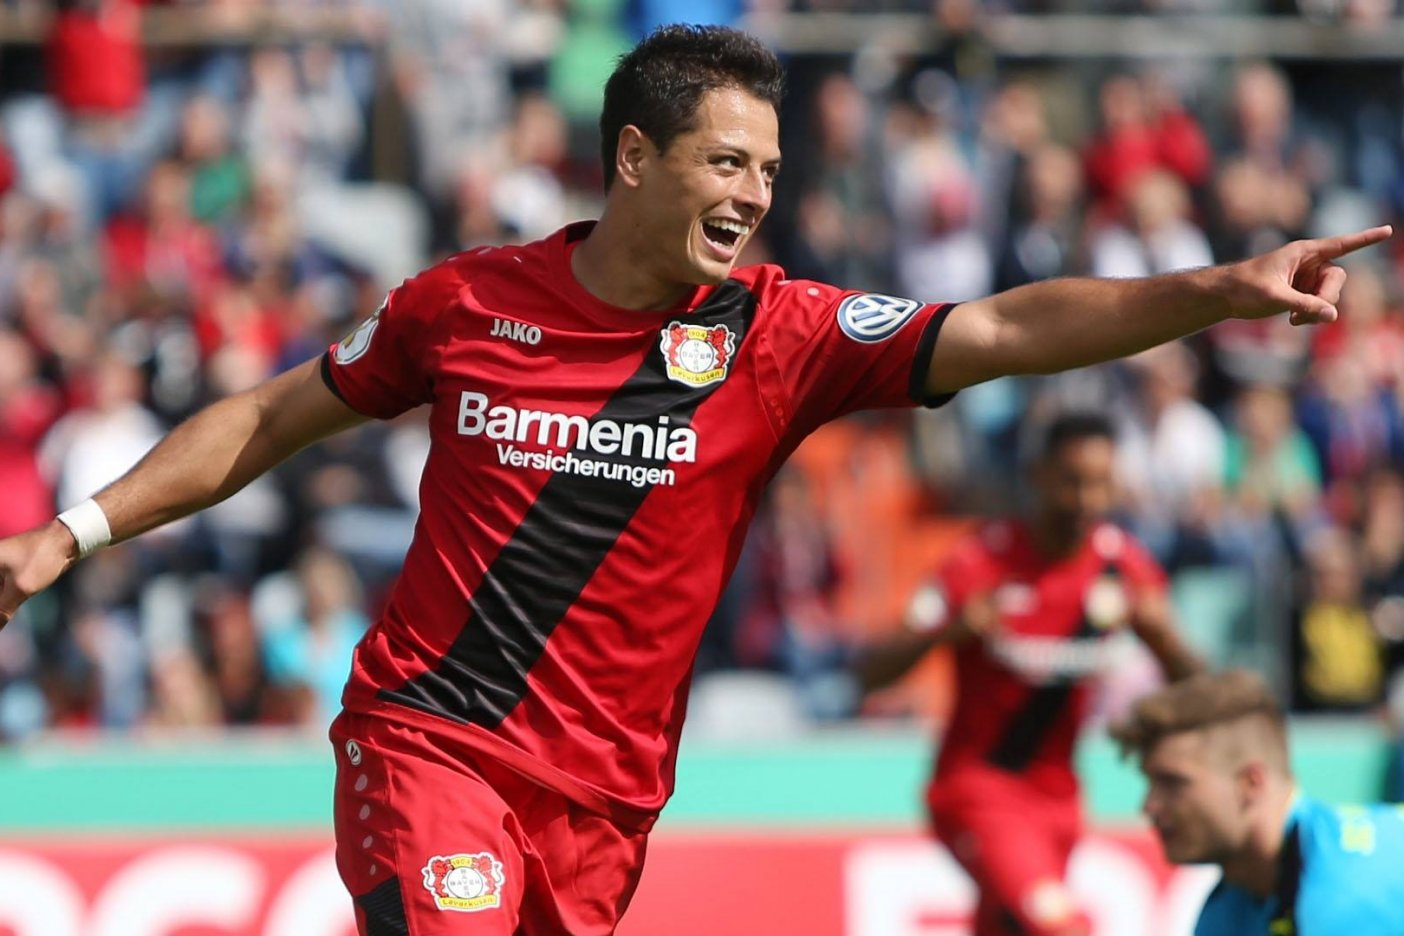 Oficial: Chicharito regresa a la Premier League